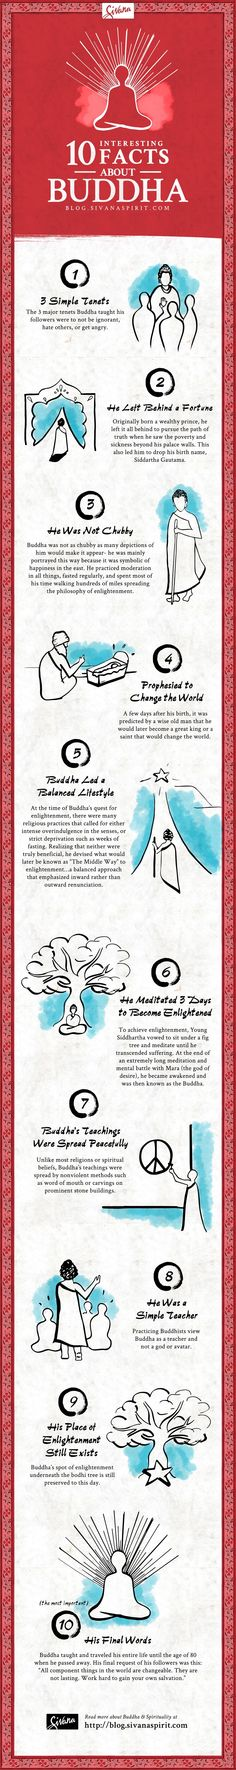 10 Interesting Facts About Buddha from our friends at Sivana Spirit.